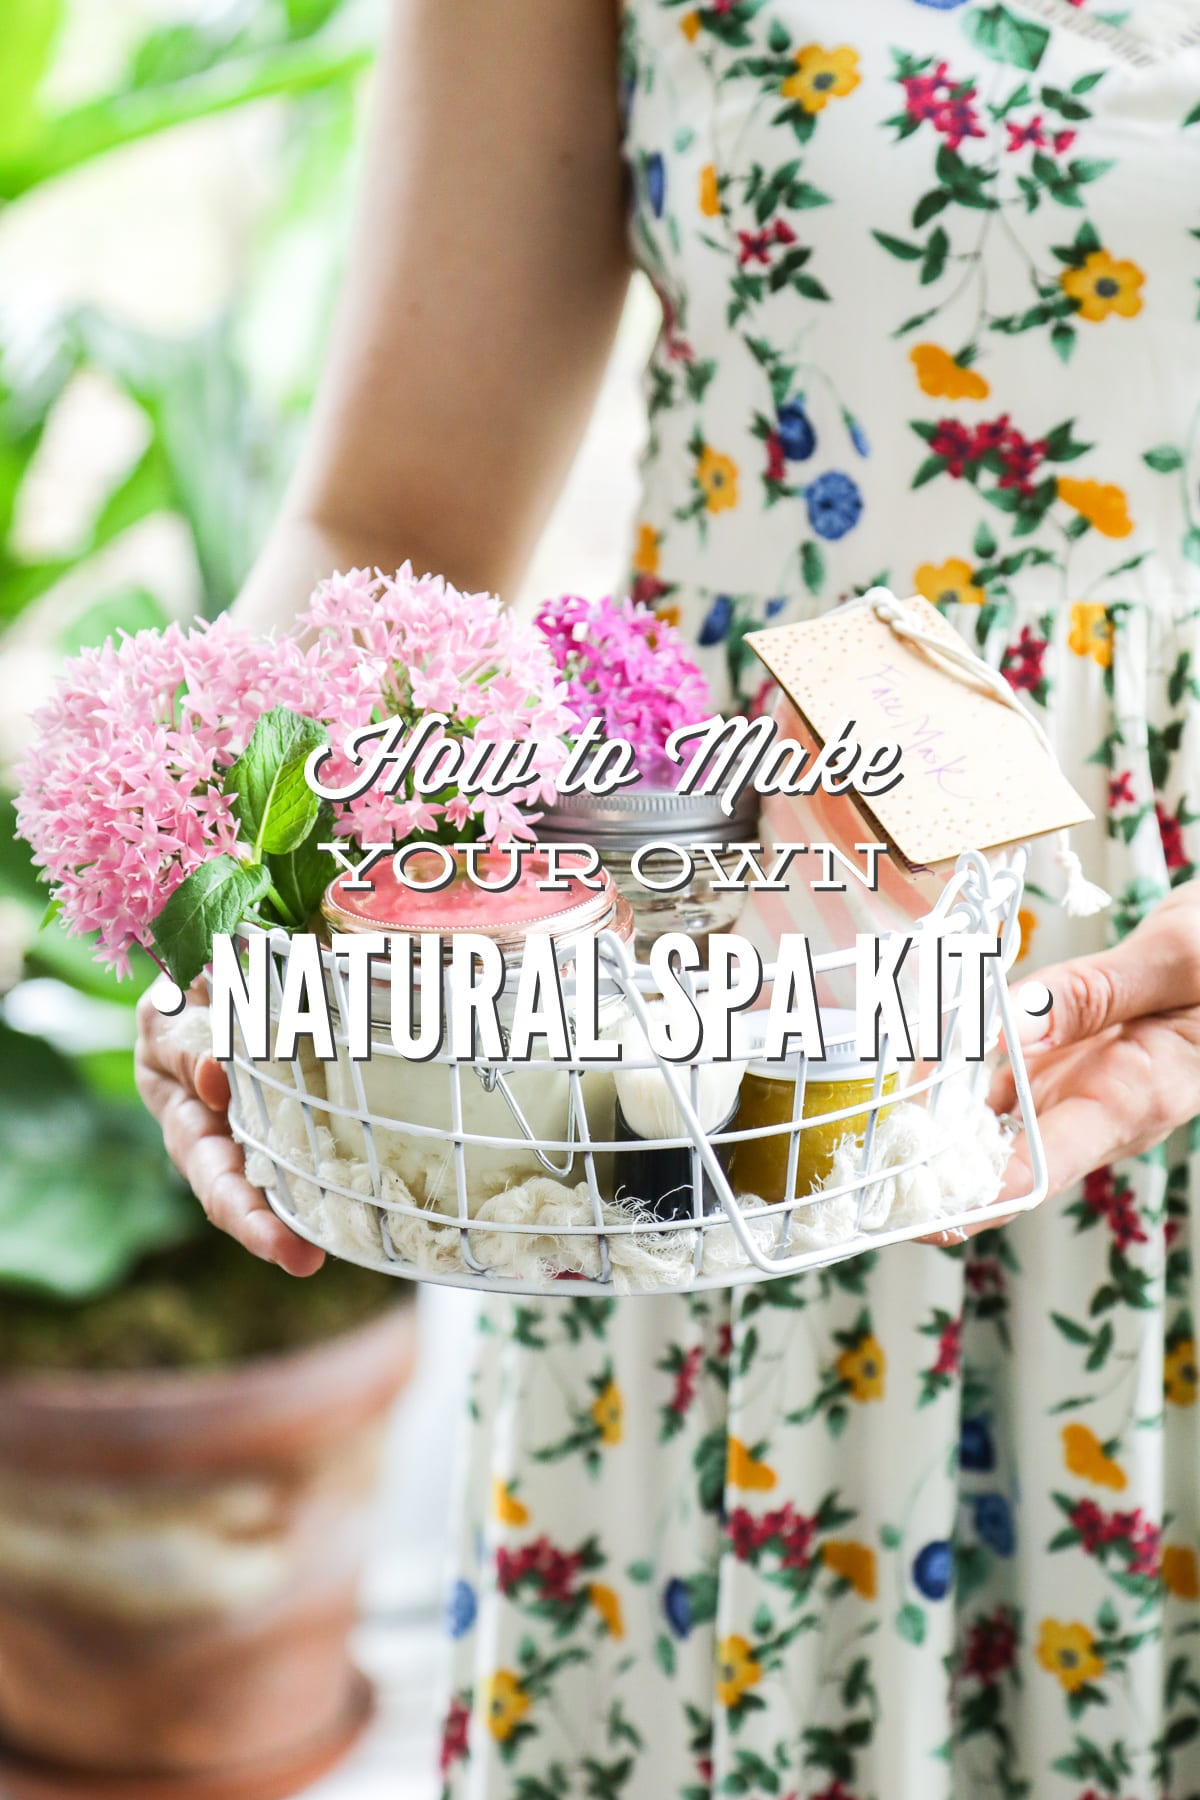 How to Make Your Own Natural Spa Kit